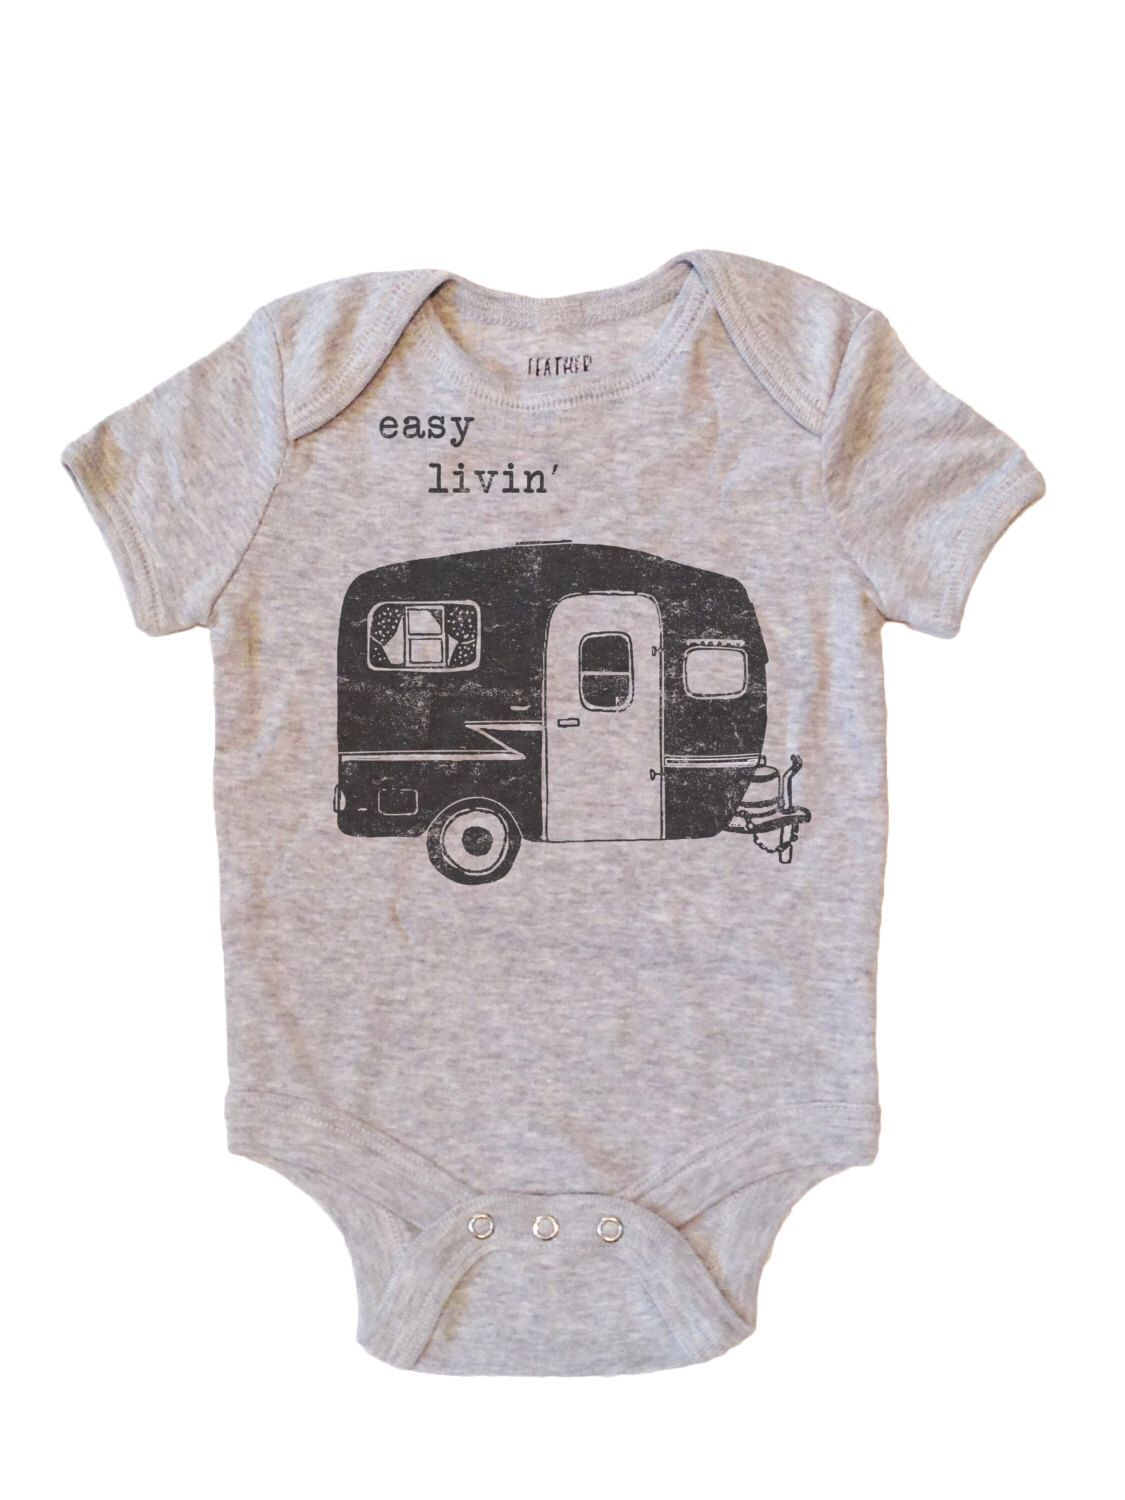 Easy Livin' Baby One Piece, Infant Graphic Bodysuit, Baby Clothes by Feather 4 Arrow by FeathersForeverShop on Etsy https://www.etsy.com/listing/209998776/easy-livin-baby-one-piece-infant-graphic